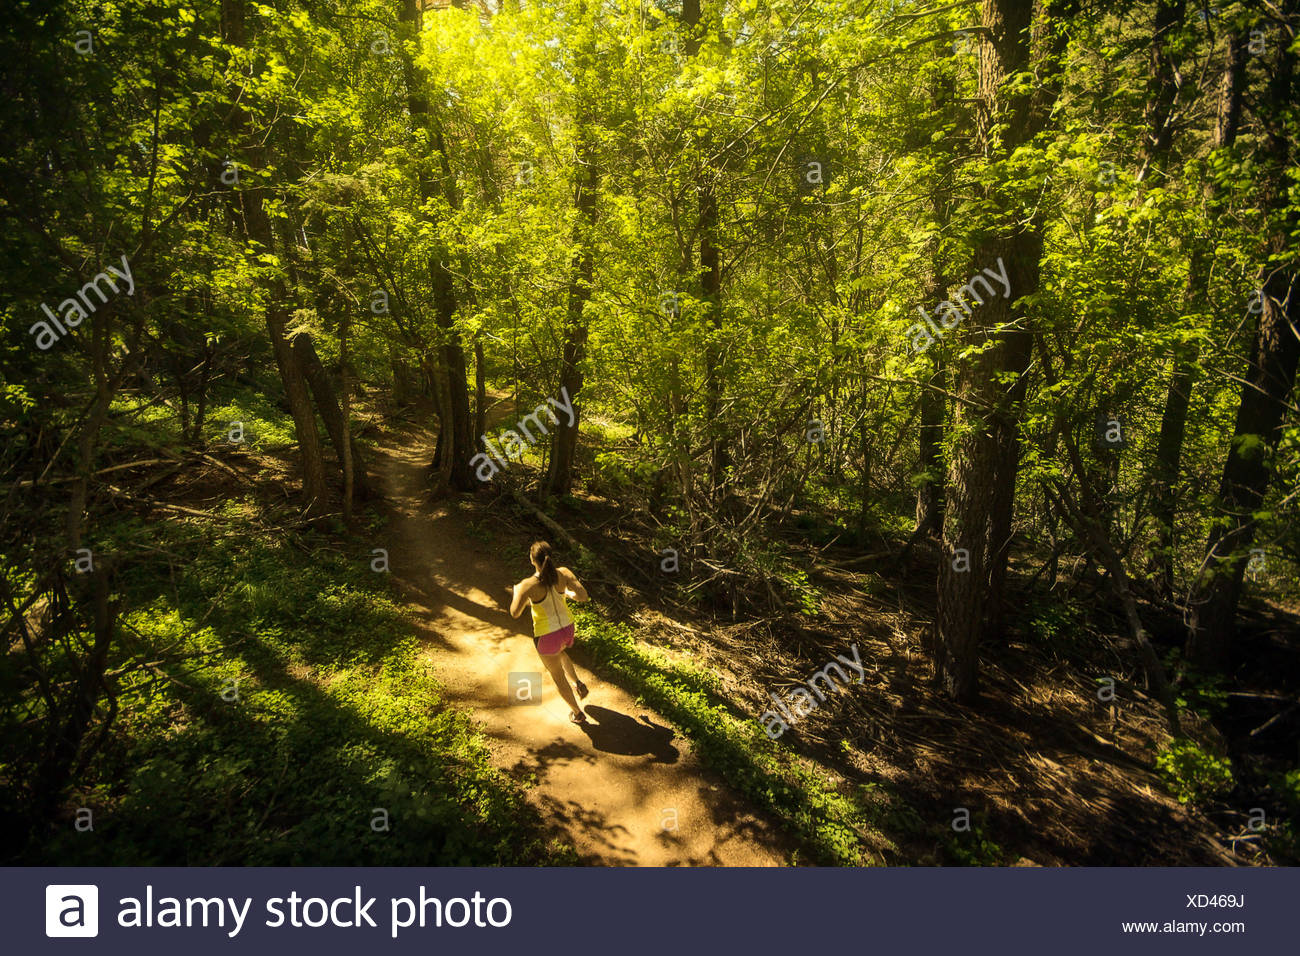 USA, Colorado, Golden, Woman trail running through forest - Stock Image